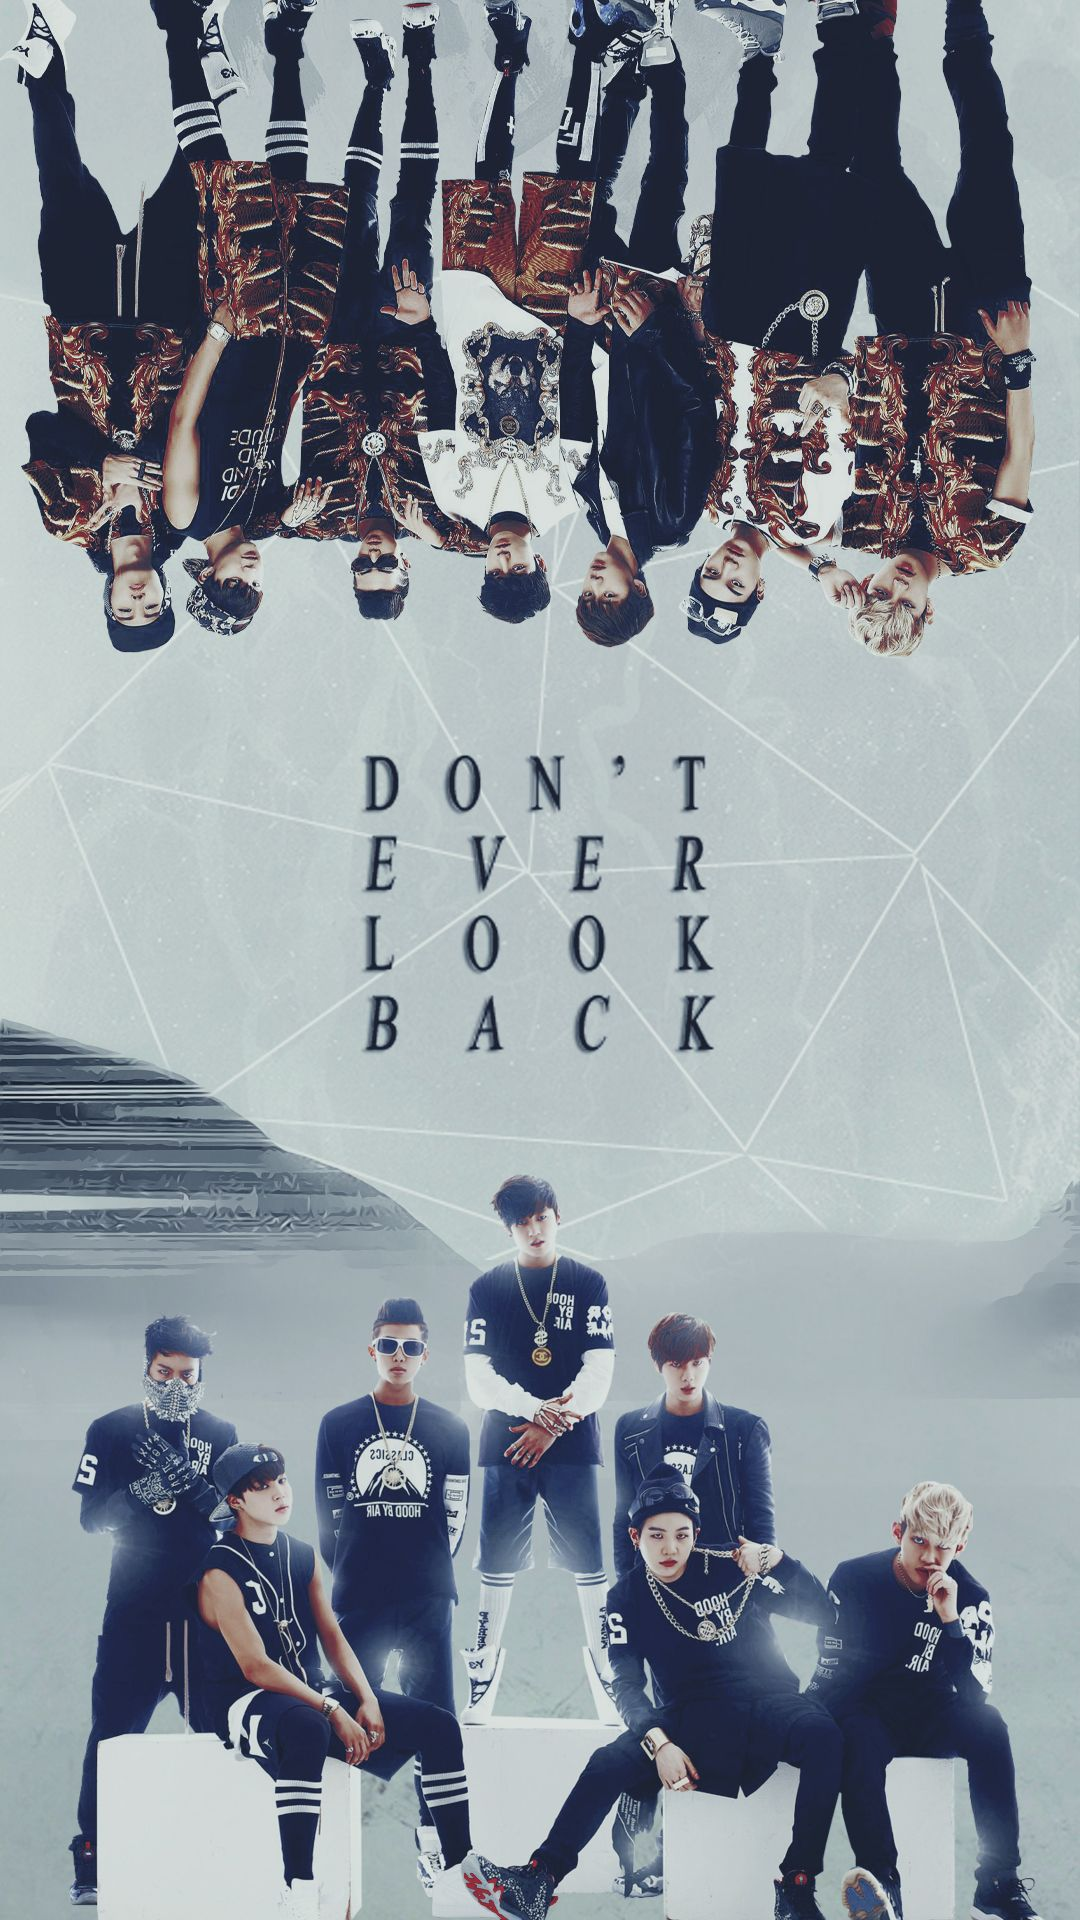 Exo iphone wallpaper tumblr - Exo Wallpaper For Android Image Source